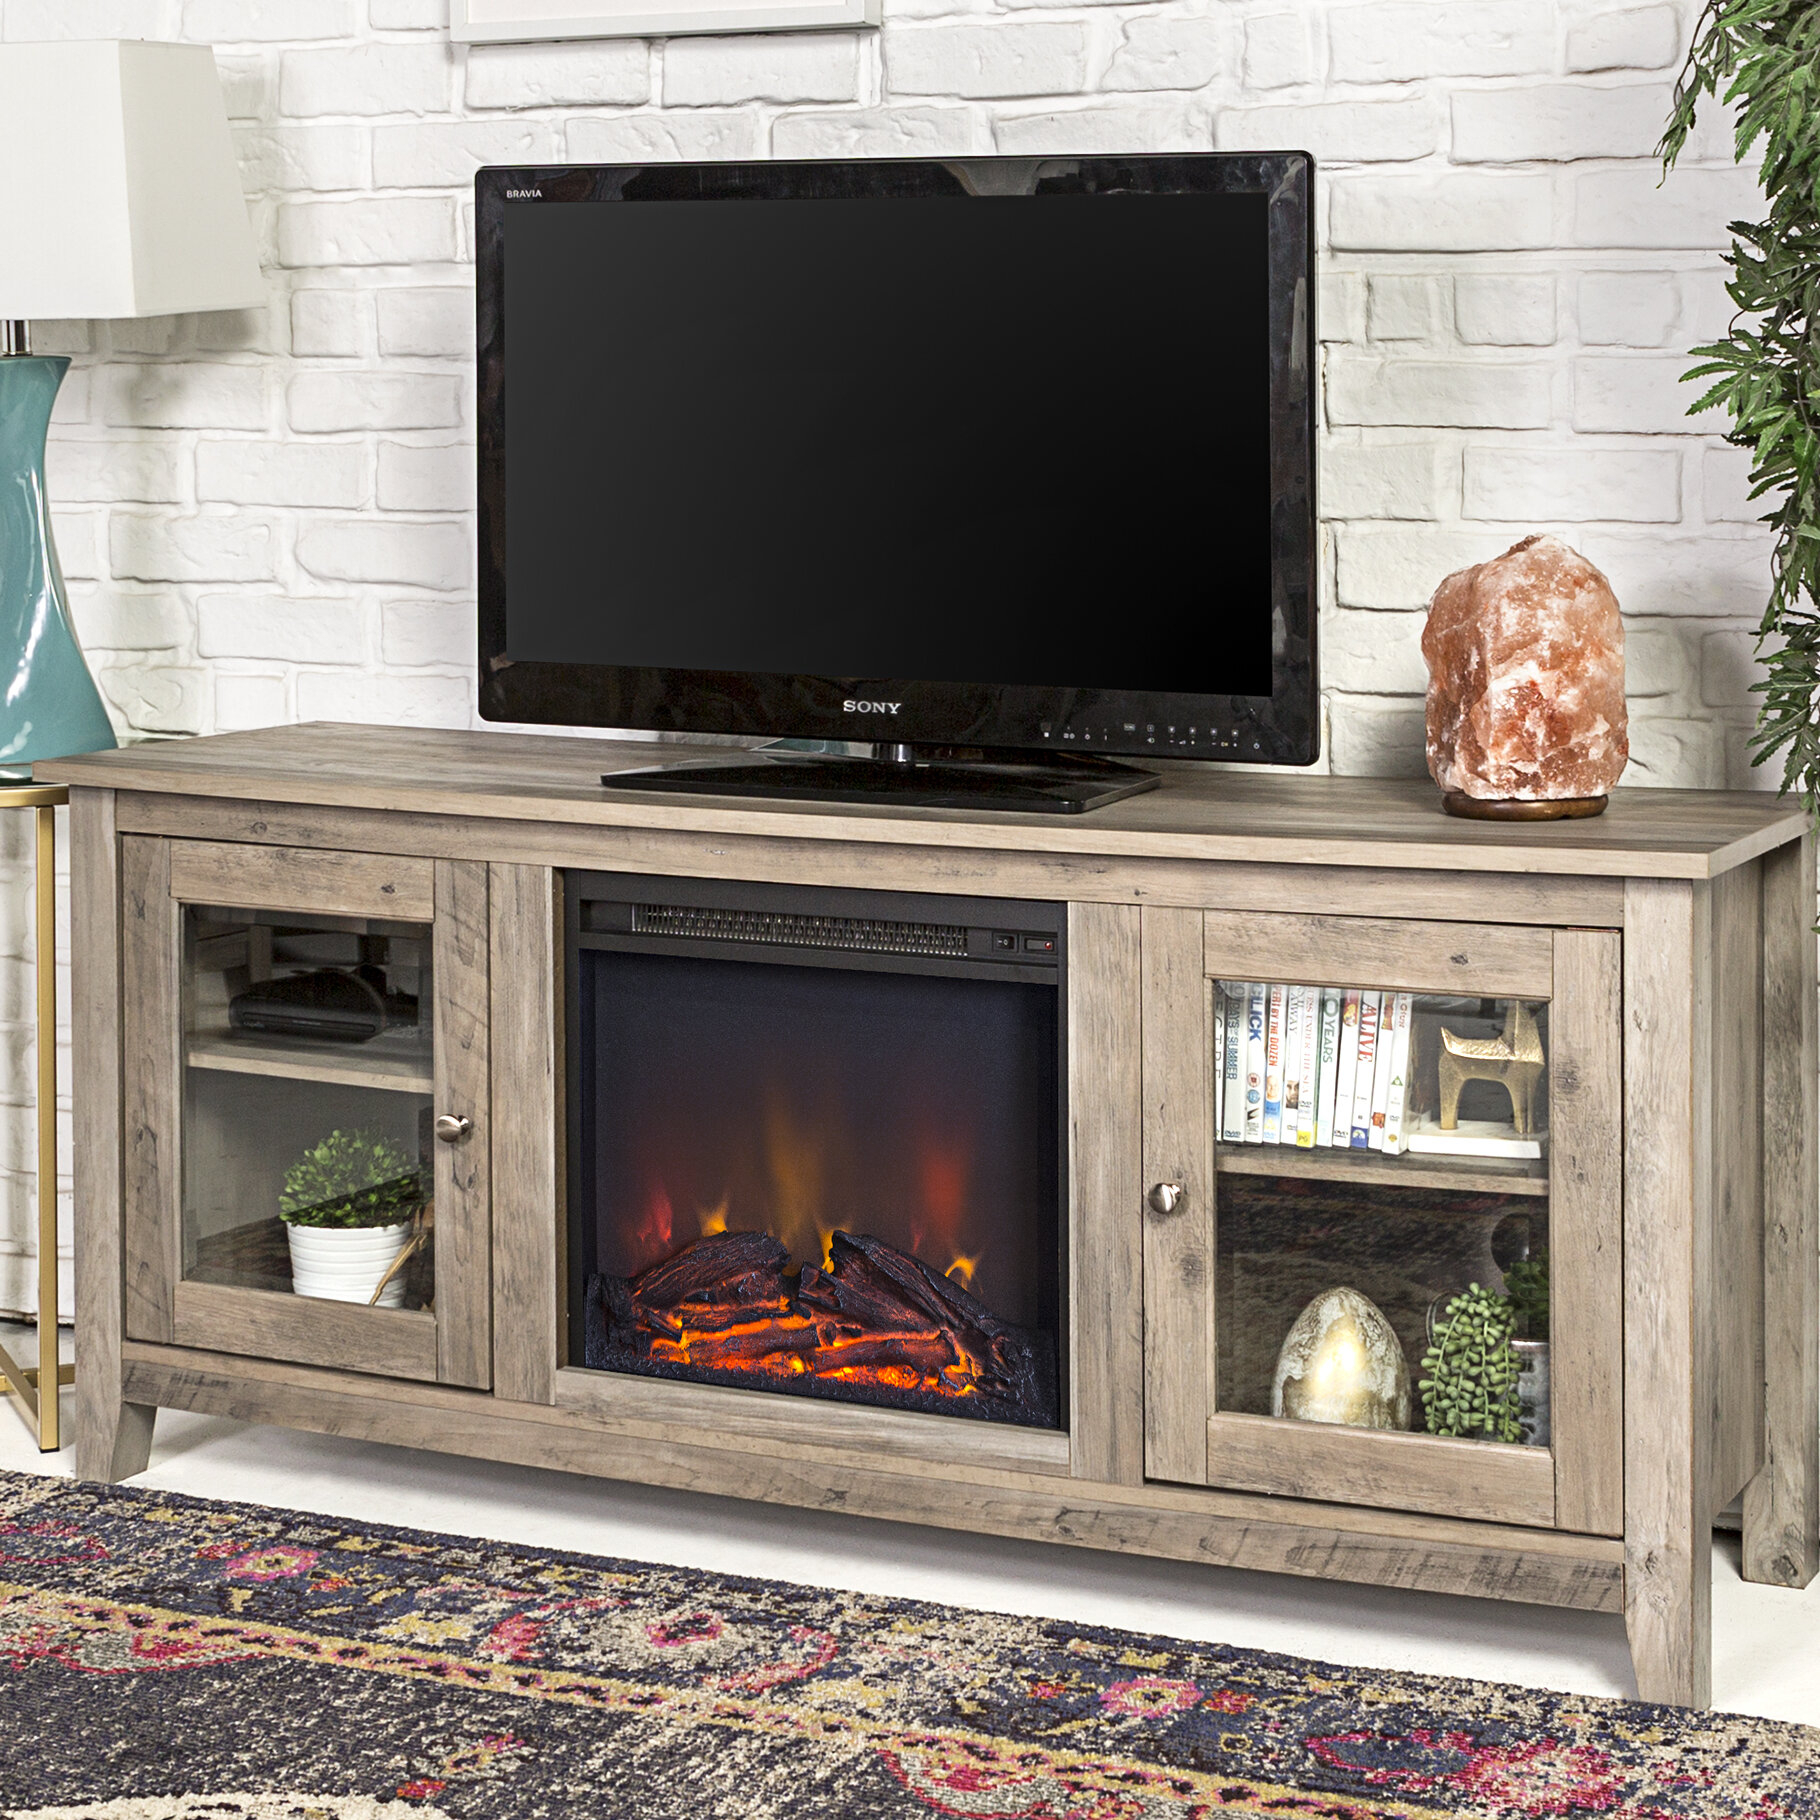 50 Decorative Electric Fireplace You Ll Love In 2020 Visual Hunt